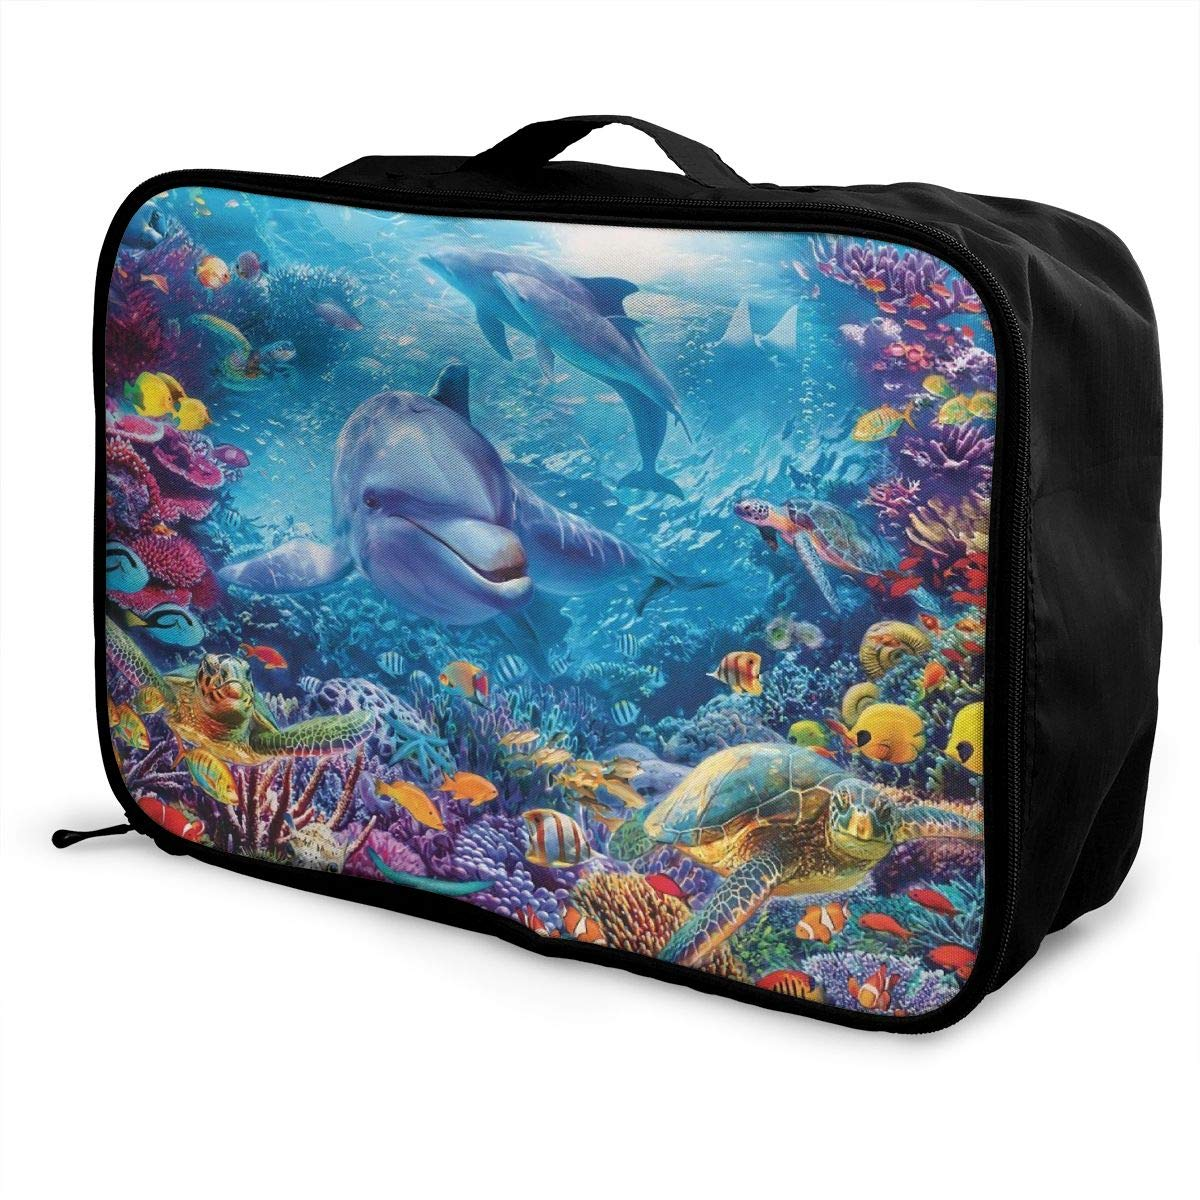 Magnificent Underwater World Dolphin Turtle Travel Lightweight Waterproof Foldable Storage Portable Luggage Duffle Tote Bag Large Capacity In Trolley Handle Bags 6x11x15 Inch